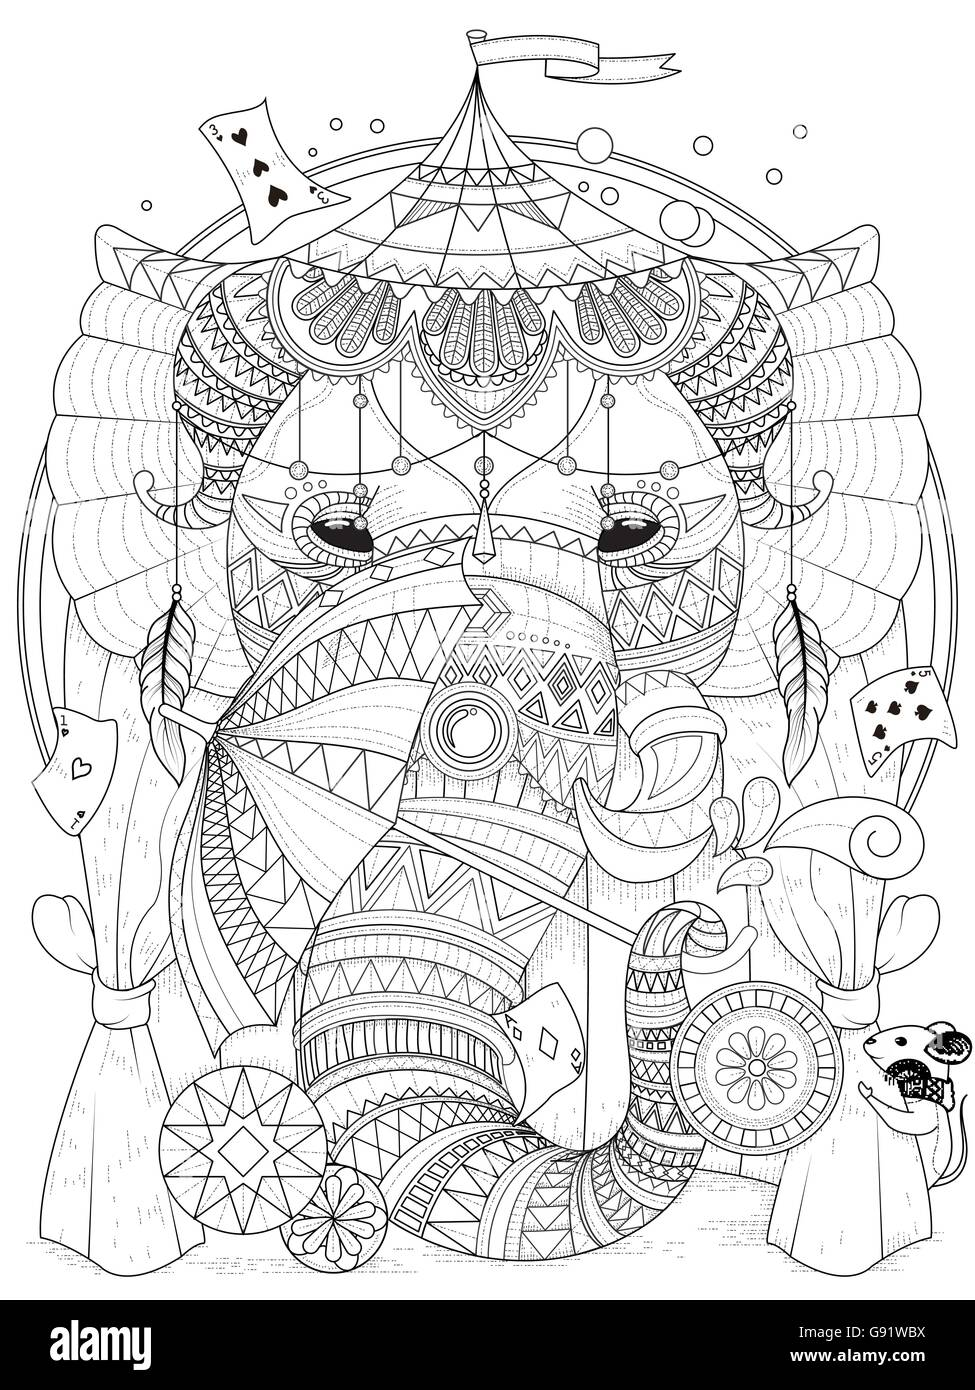 adult coloring page - elephant in the circus with magic props Stock ...